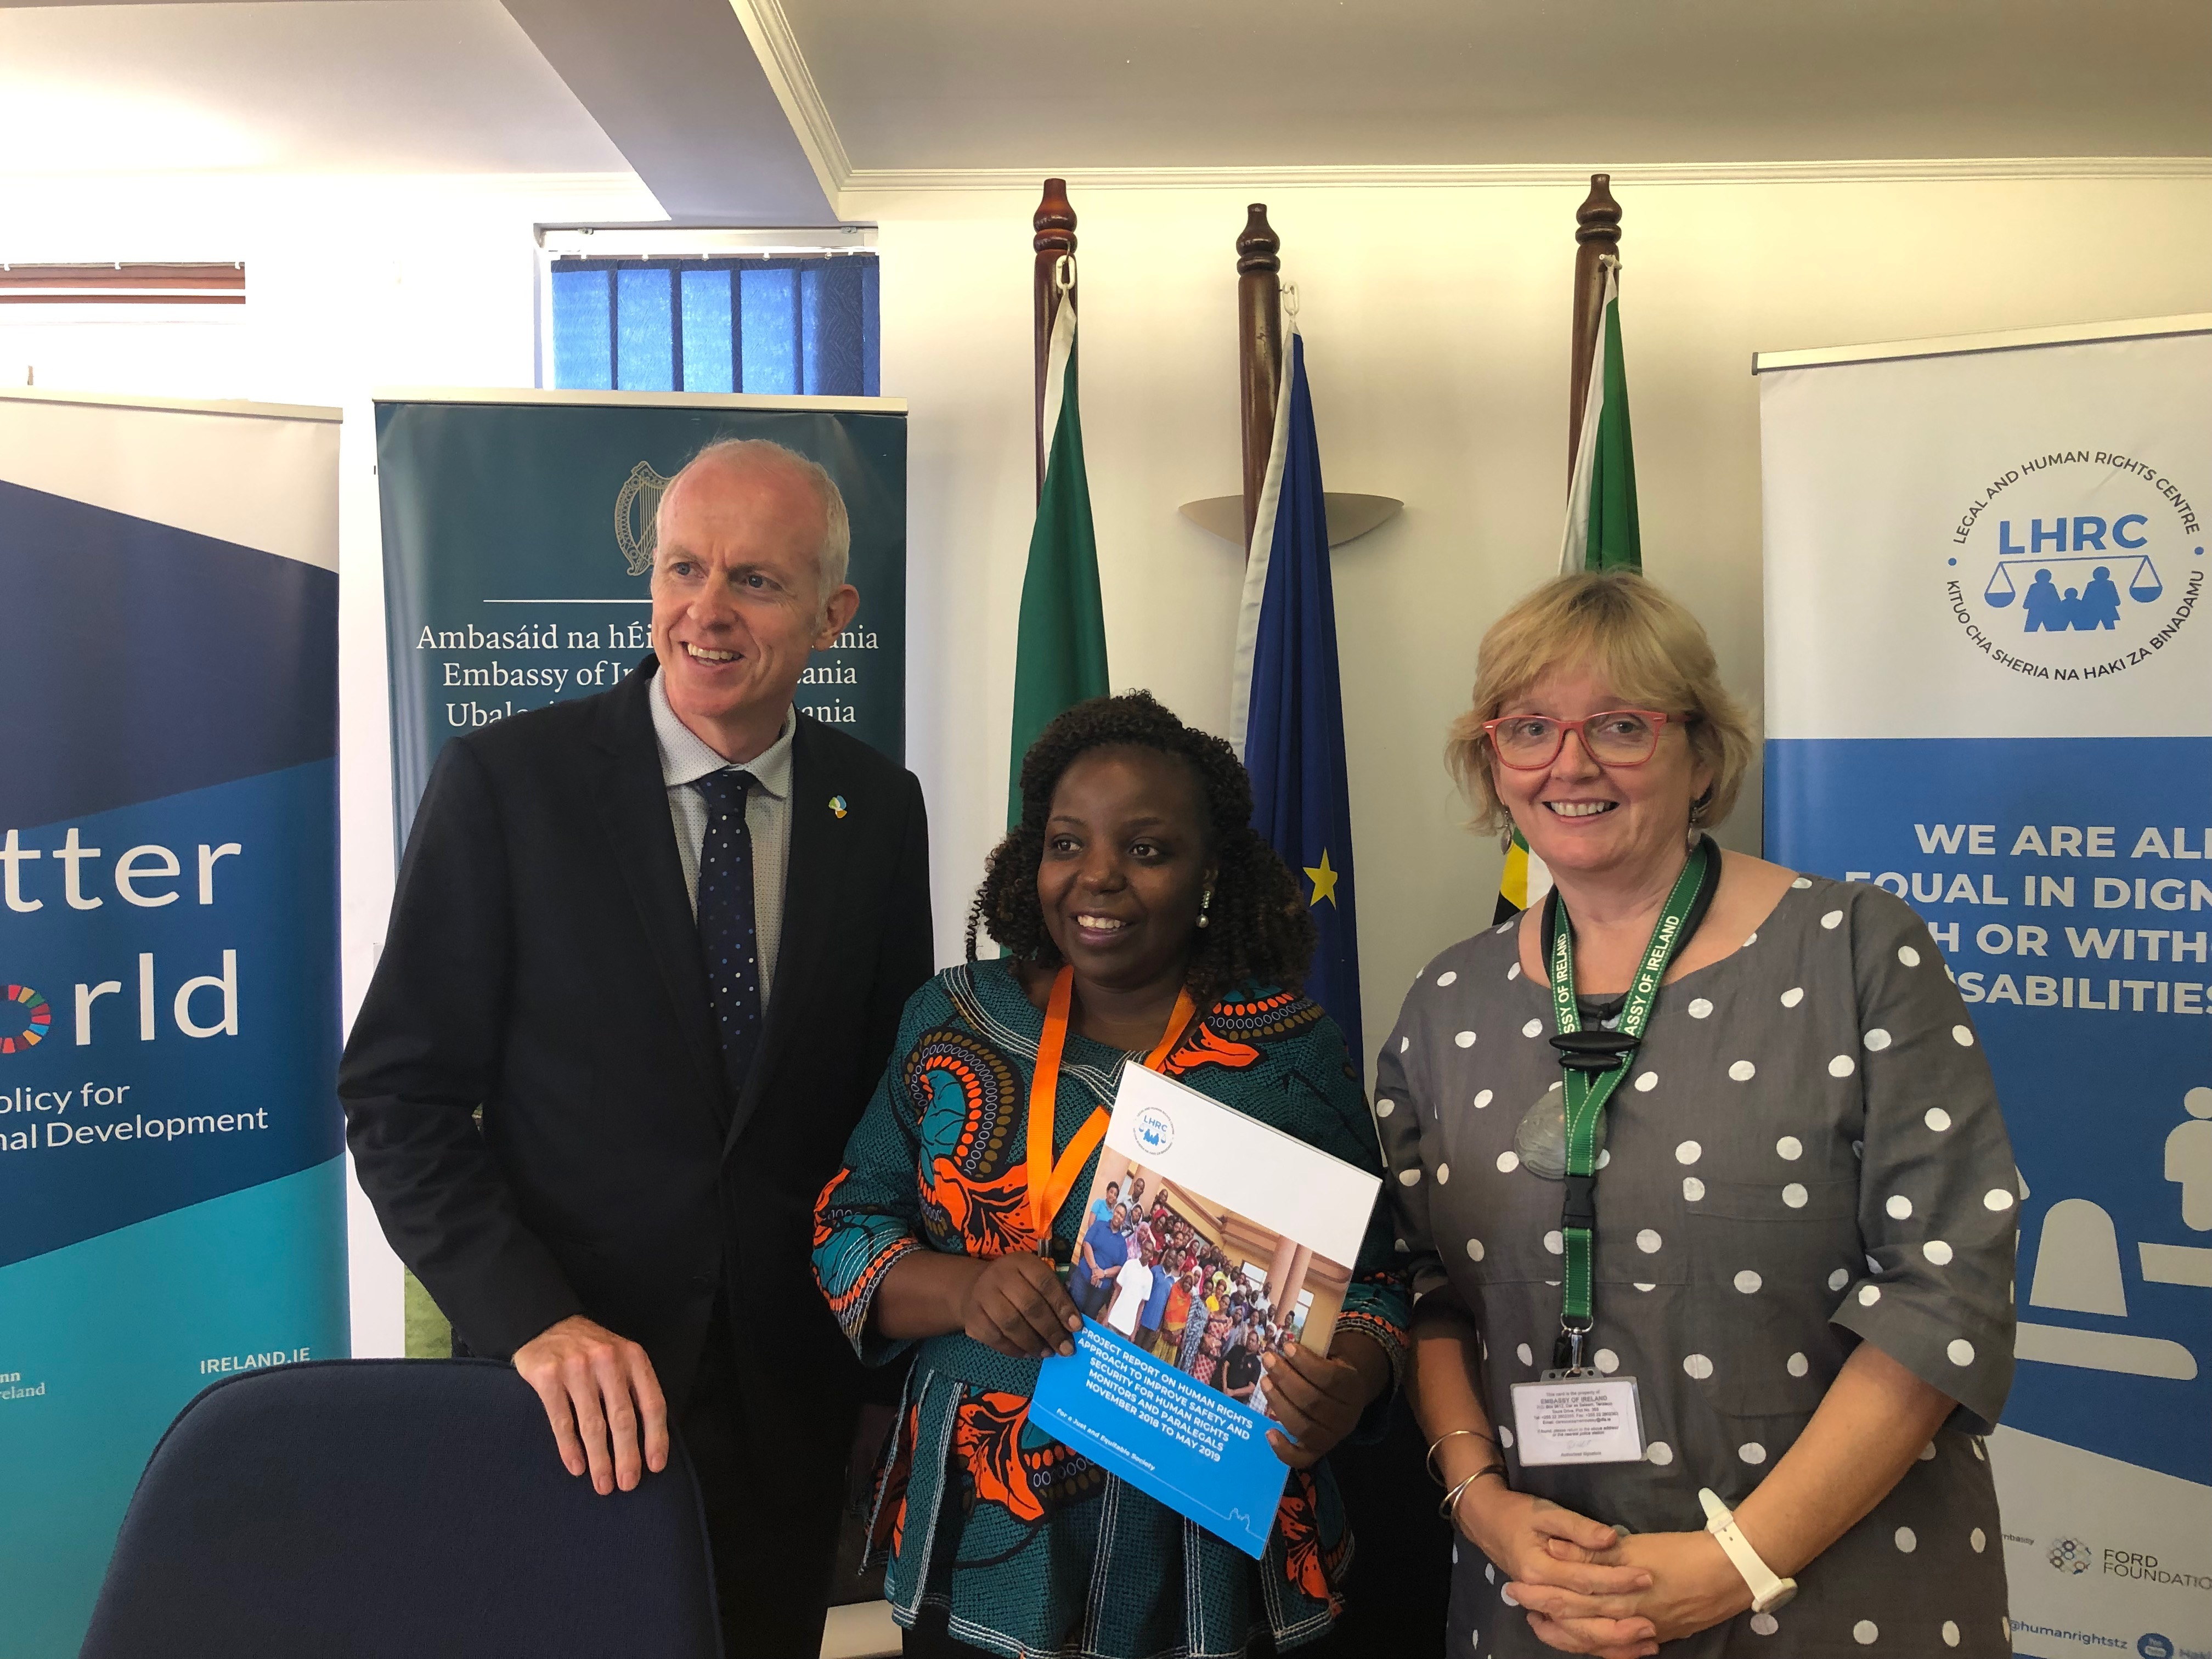 Ireland renews partnership with the Legal and Human Rights Centre